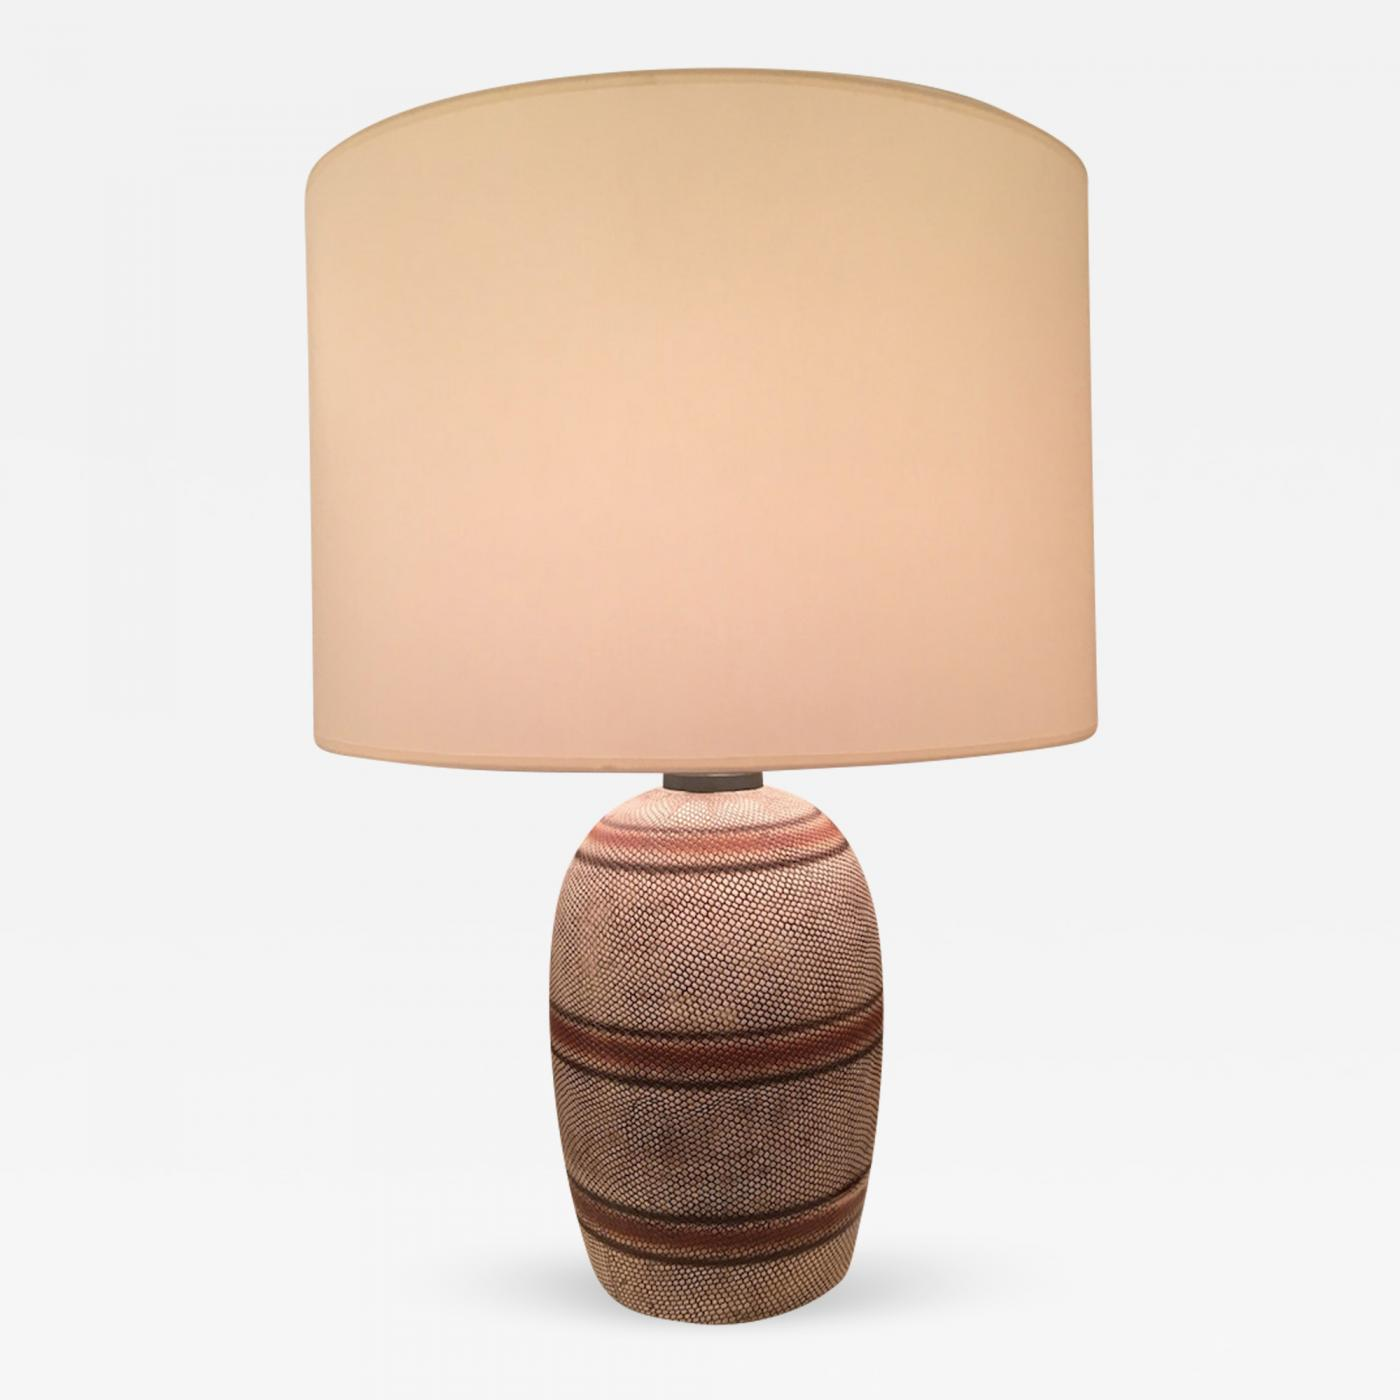 Georges Jouve French Ceramic Mid Century Table Lamp